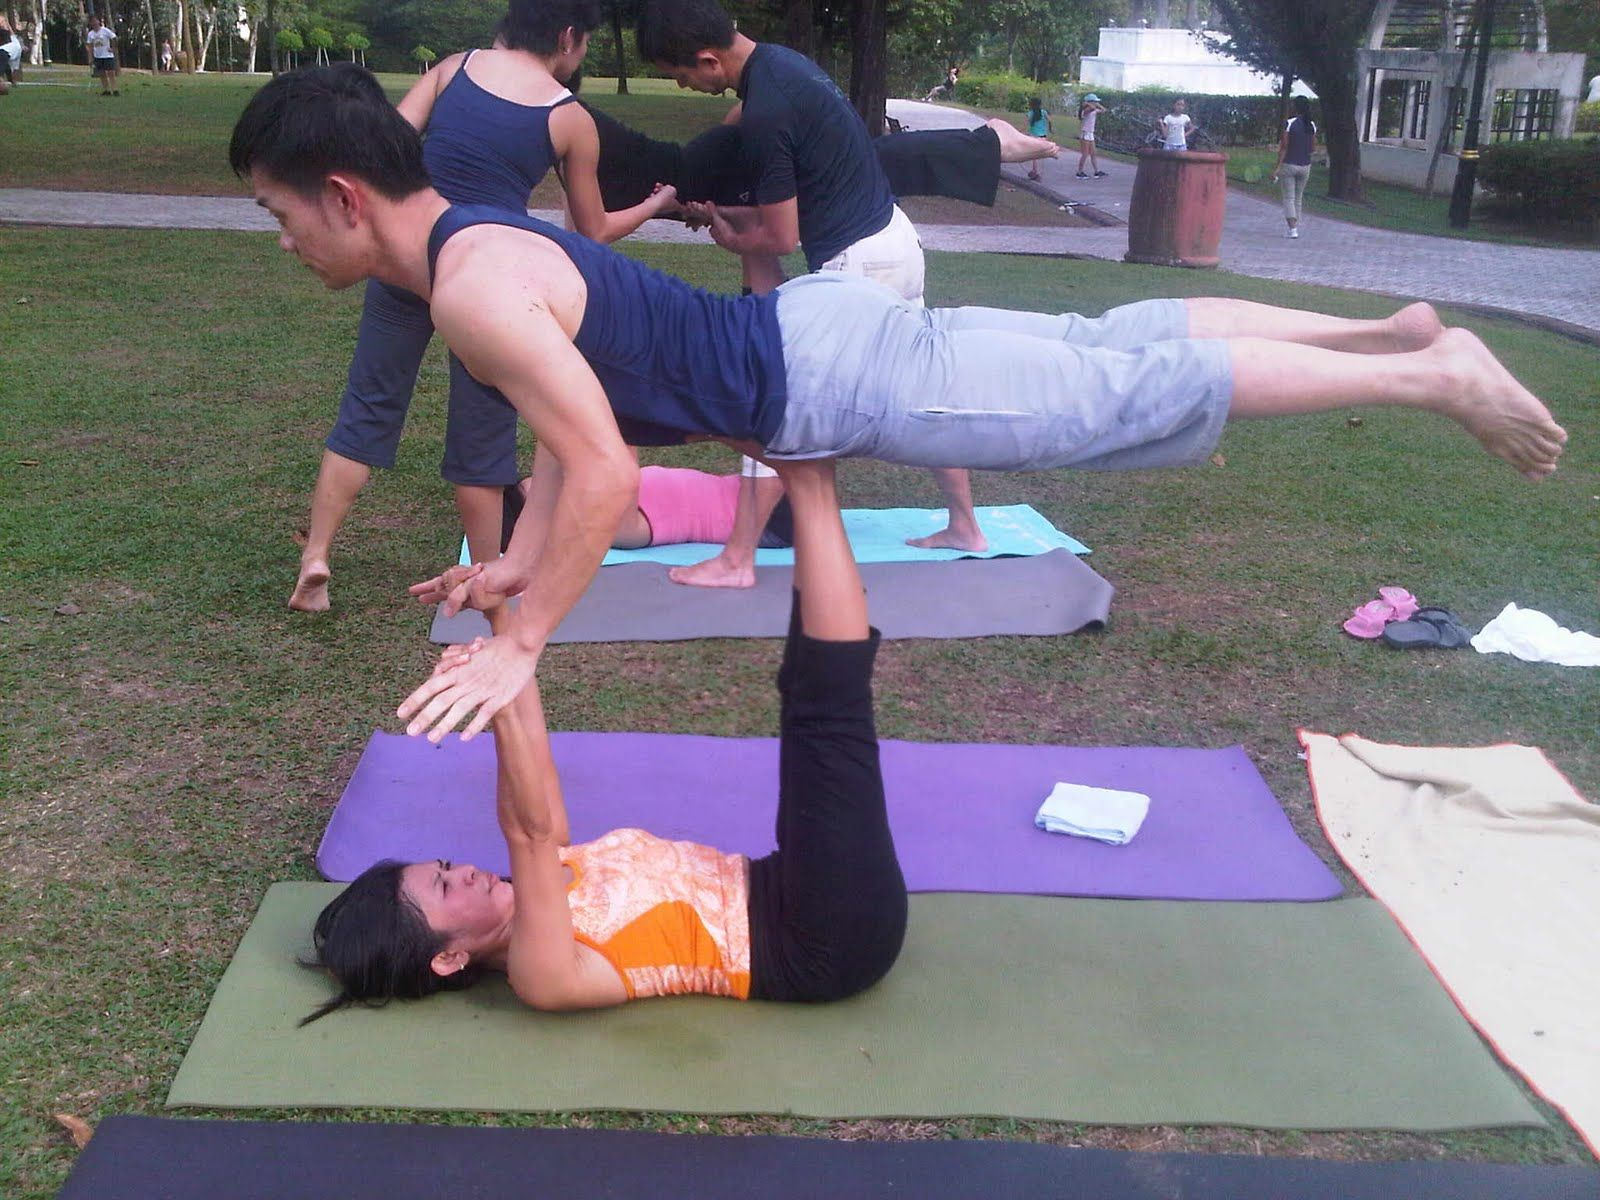 Acro Yoga Poses For Beginners Bing Imagens Couples Yoga Acro Yoga Couples Yoga Poses